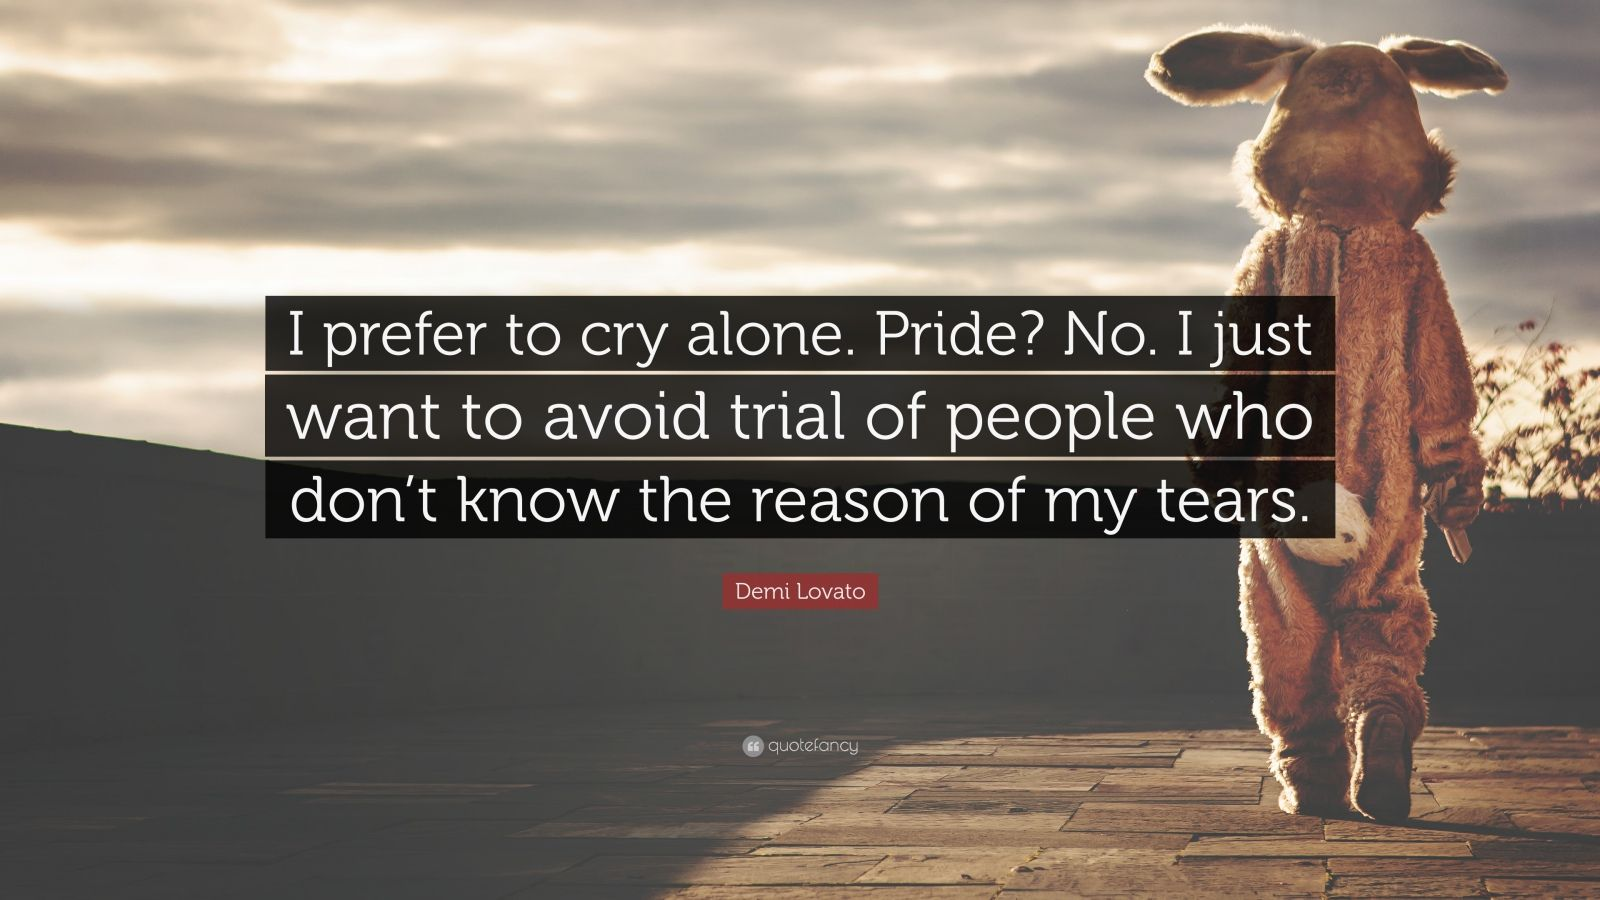 """Demi Lovato Quote: """"I prefer to cry alone. Pride? No. I just want to avoid trial of people who don't know the reason of my tears."""""""